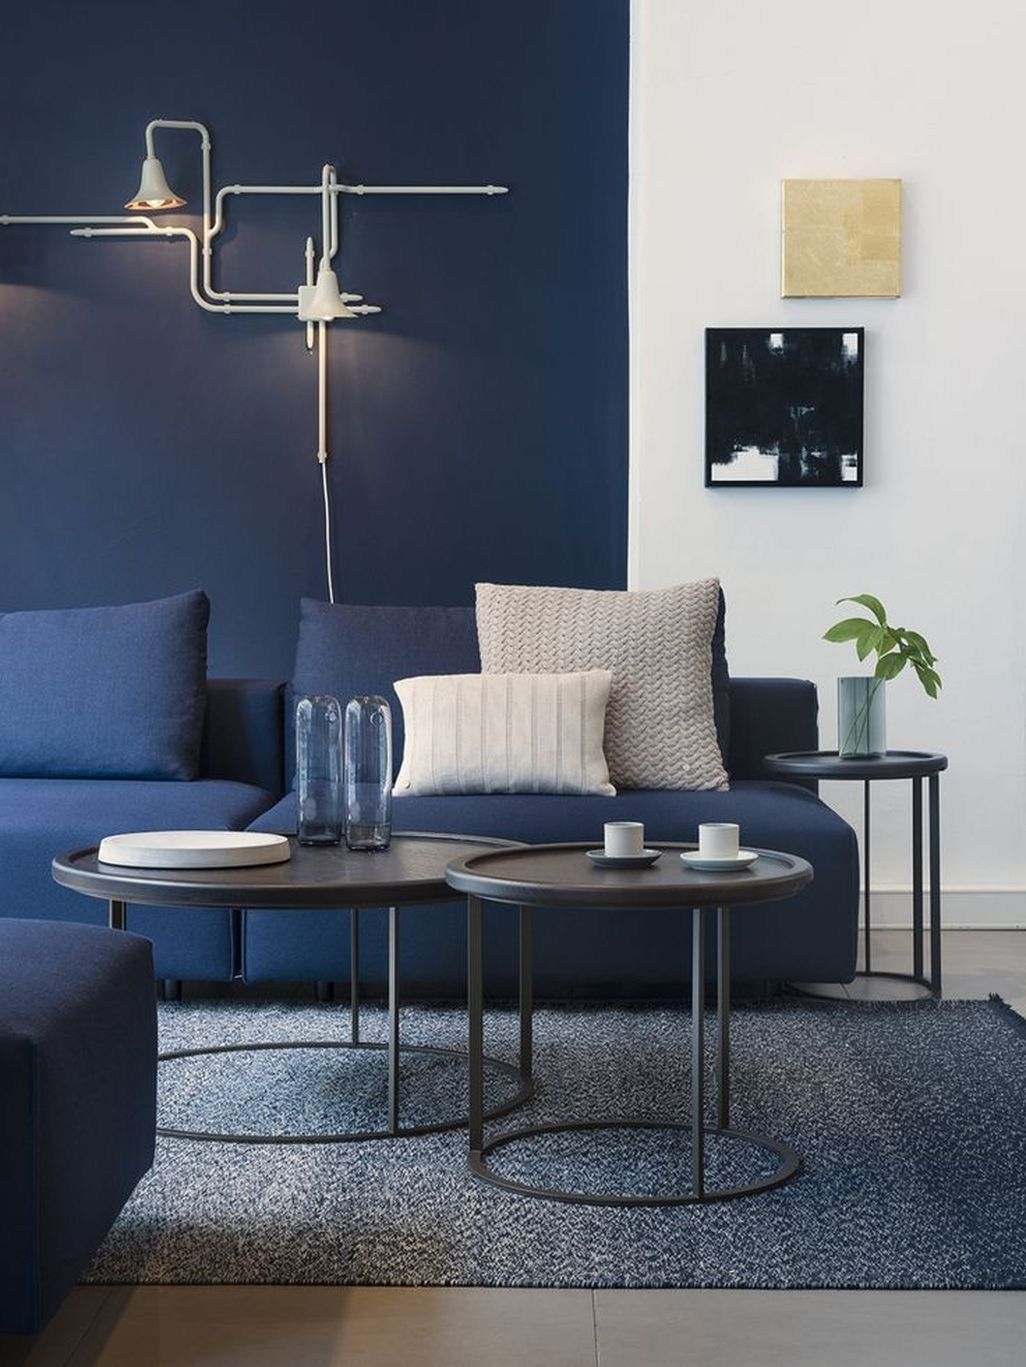 43 Cozy And Luxury Blue Living Room Ideas Blue Living Room D